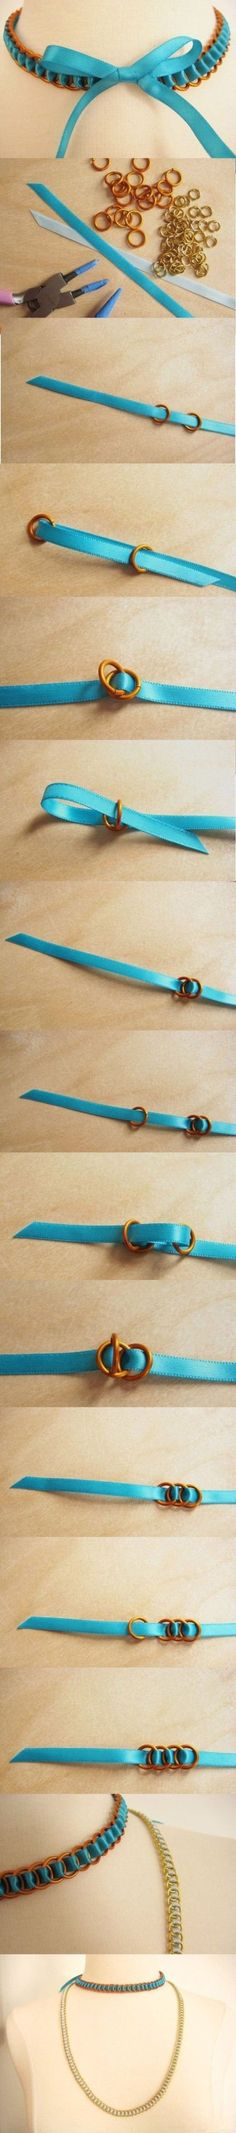 DIY Fashion Necklace | CutePinky SocialBookmarking